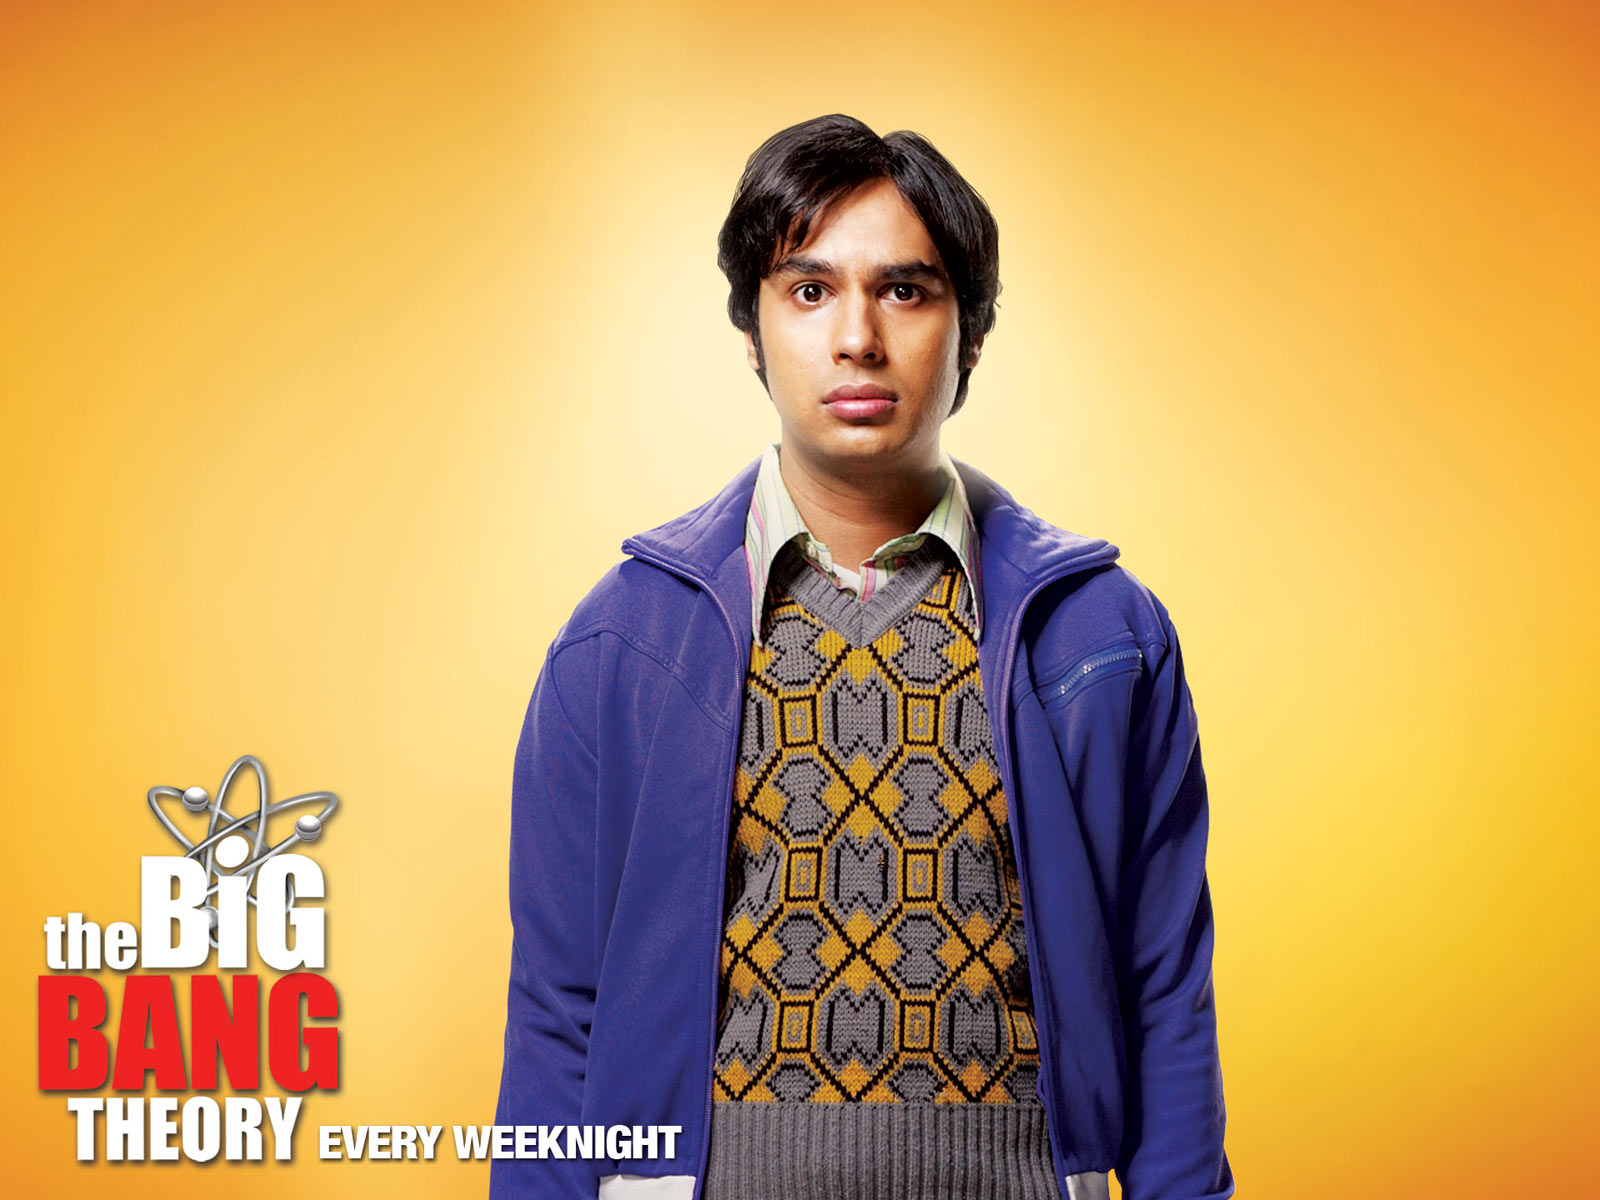 The Big Bang Theory wallpaper 12